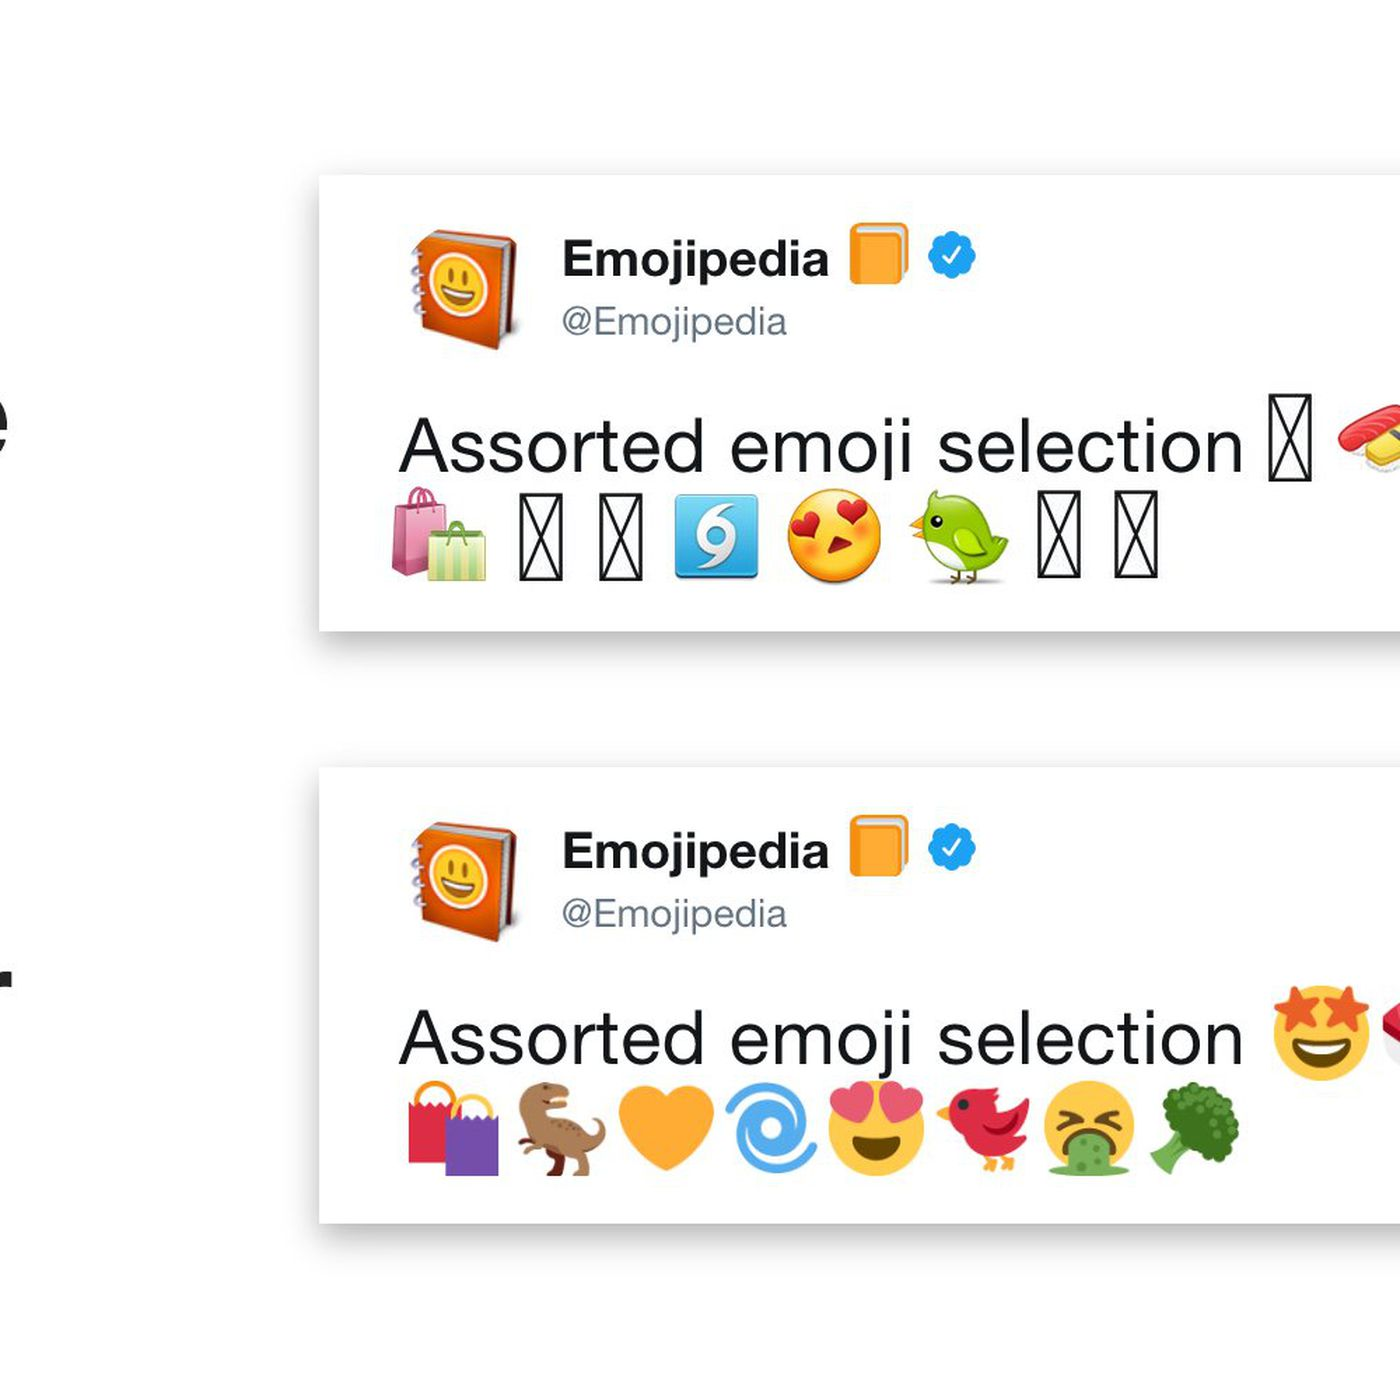 Twitter for Android is getting its own emoji because of